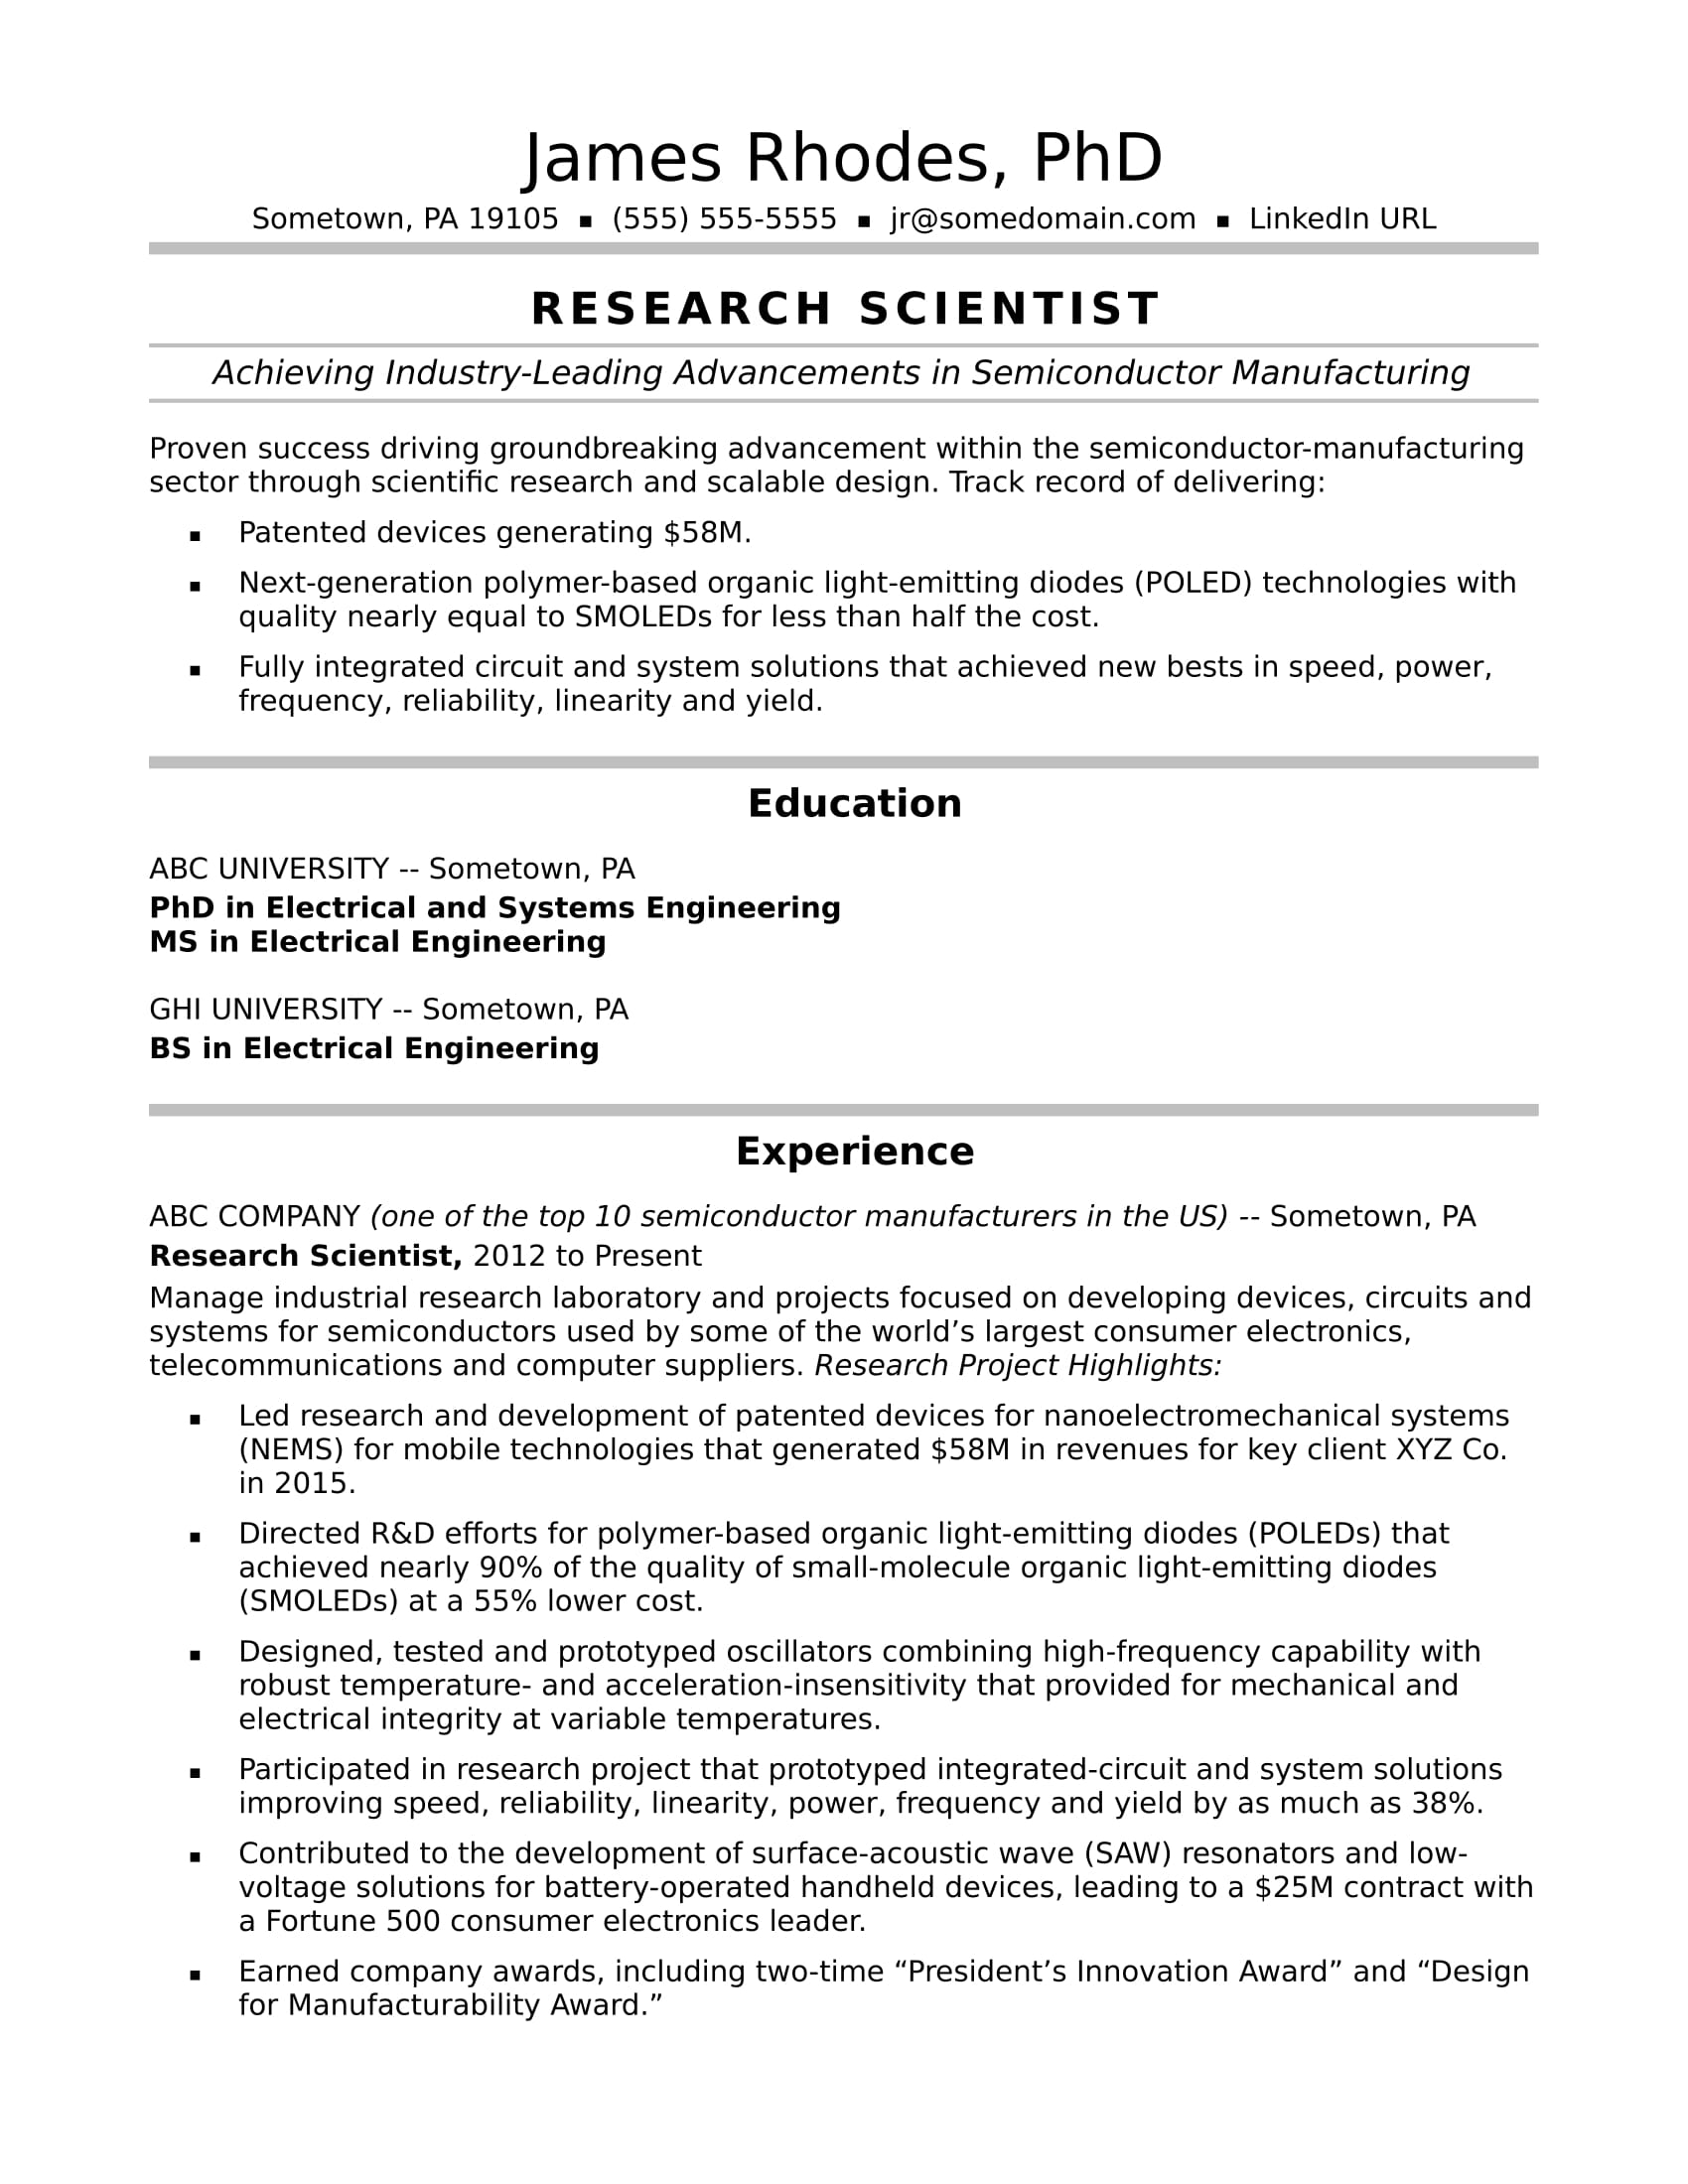 resume Resume How To Write research scientist resume sample monster com for a scientist